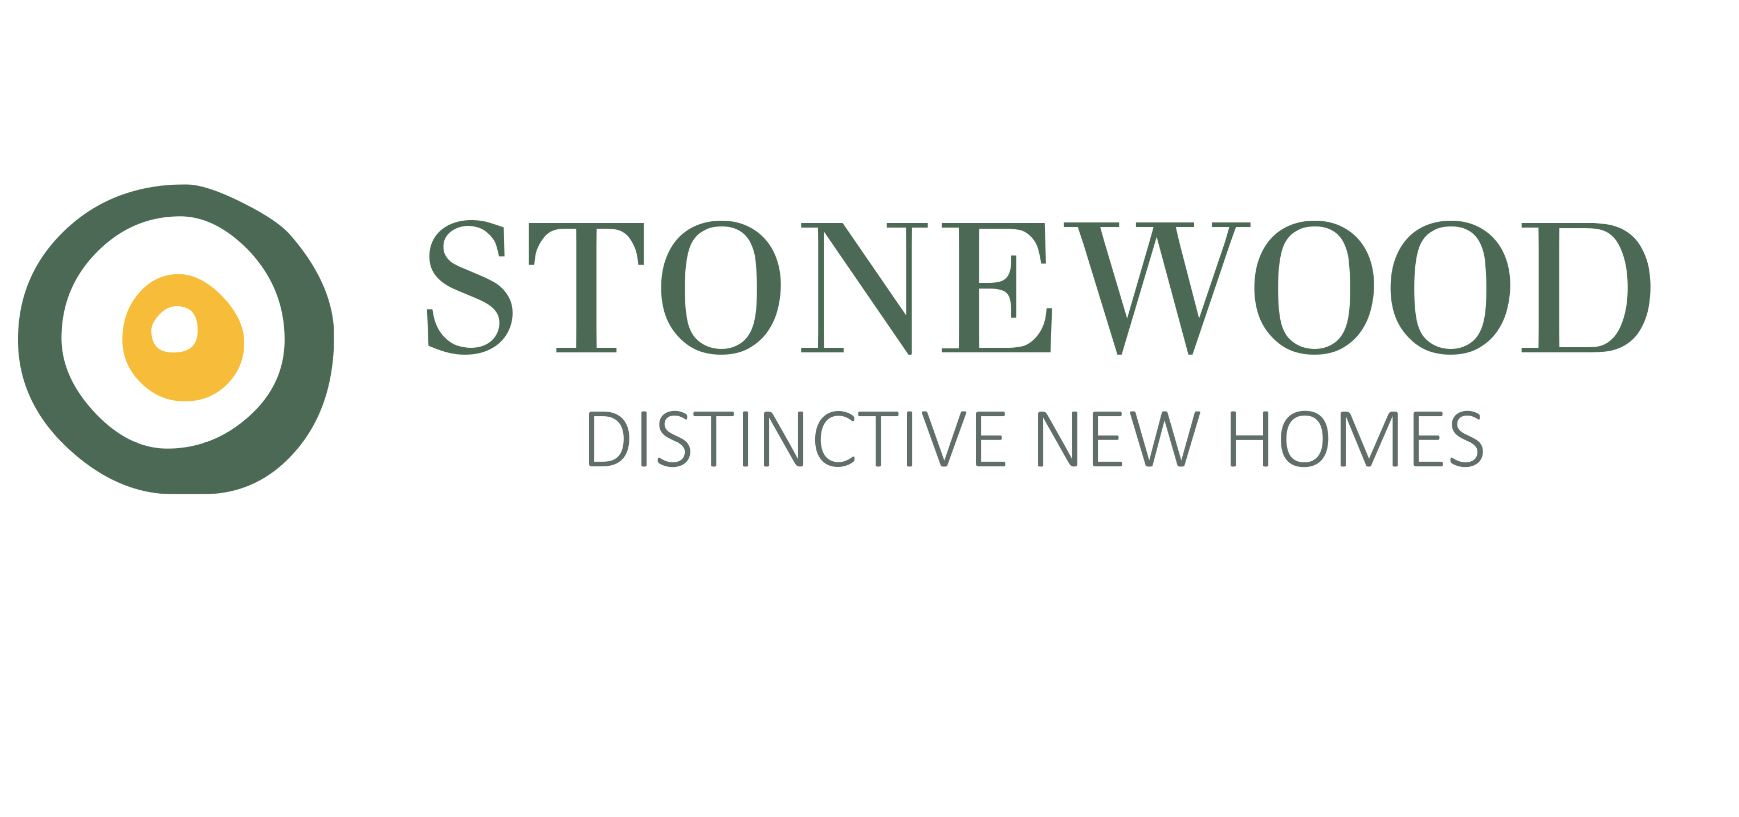 We would like to welcome Stonewood Homes to ContactBuilder.